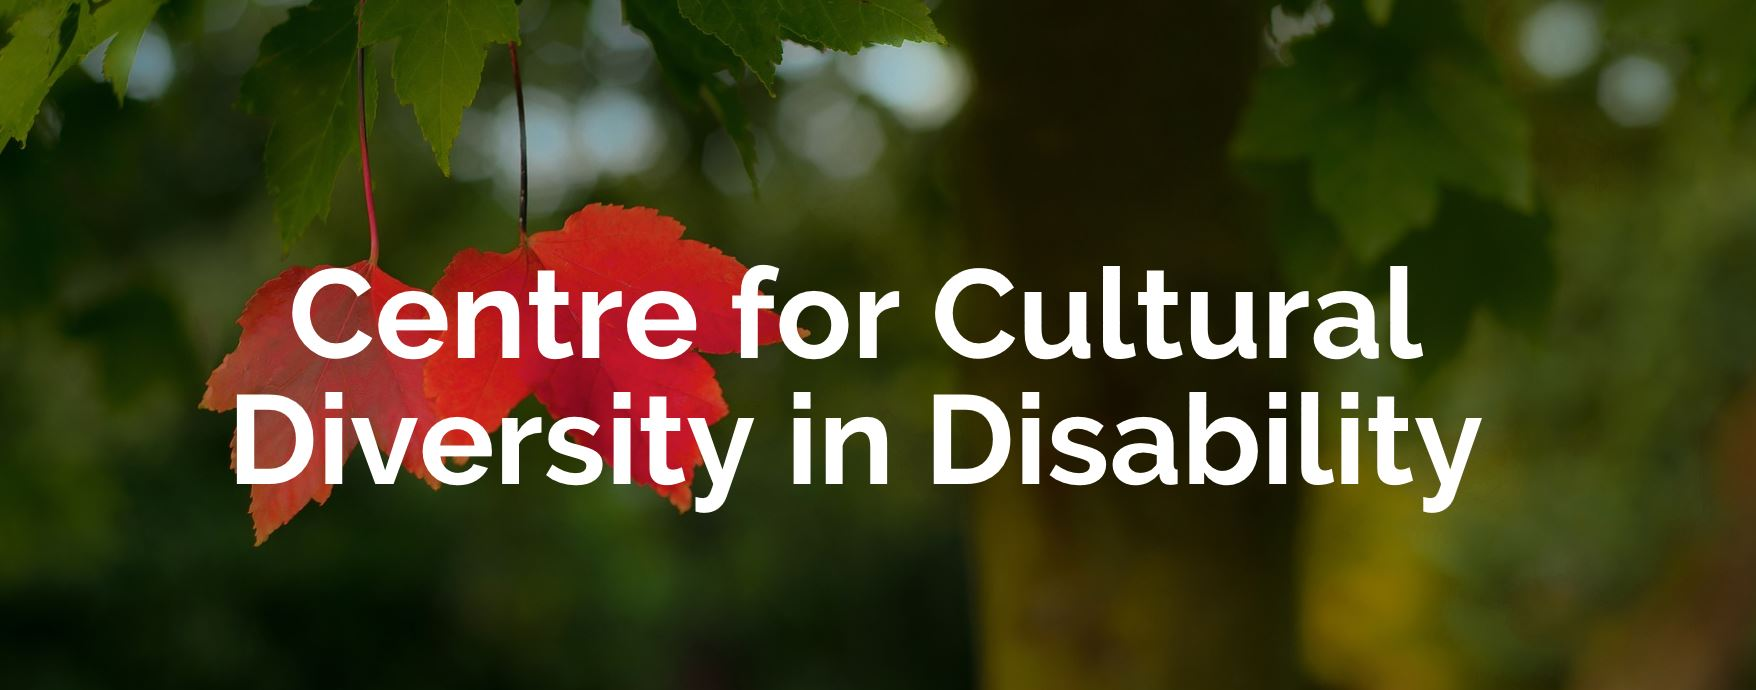 Image description: Text reads Centre for Cultural Diversity in Disability. Tree leaves in background behind.